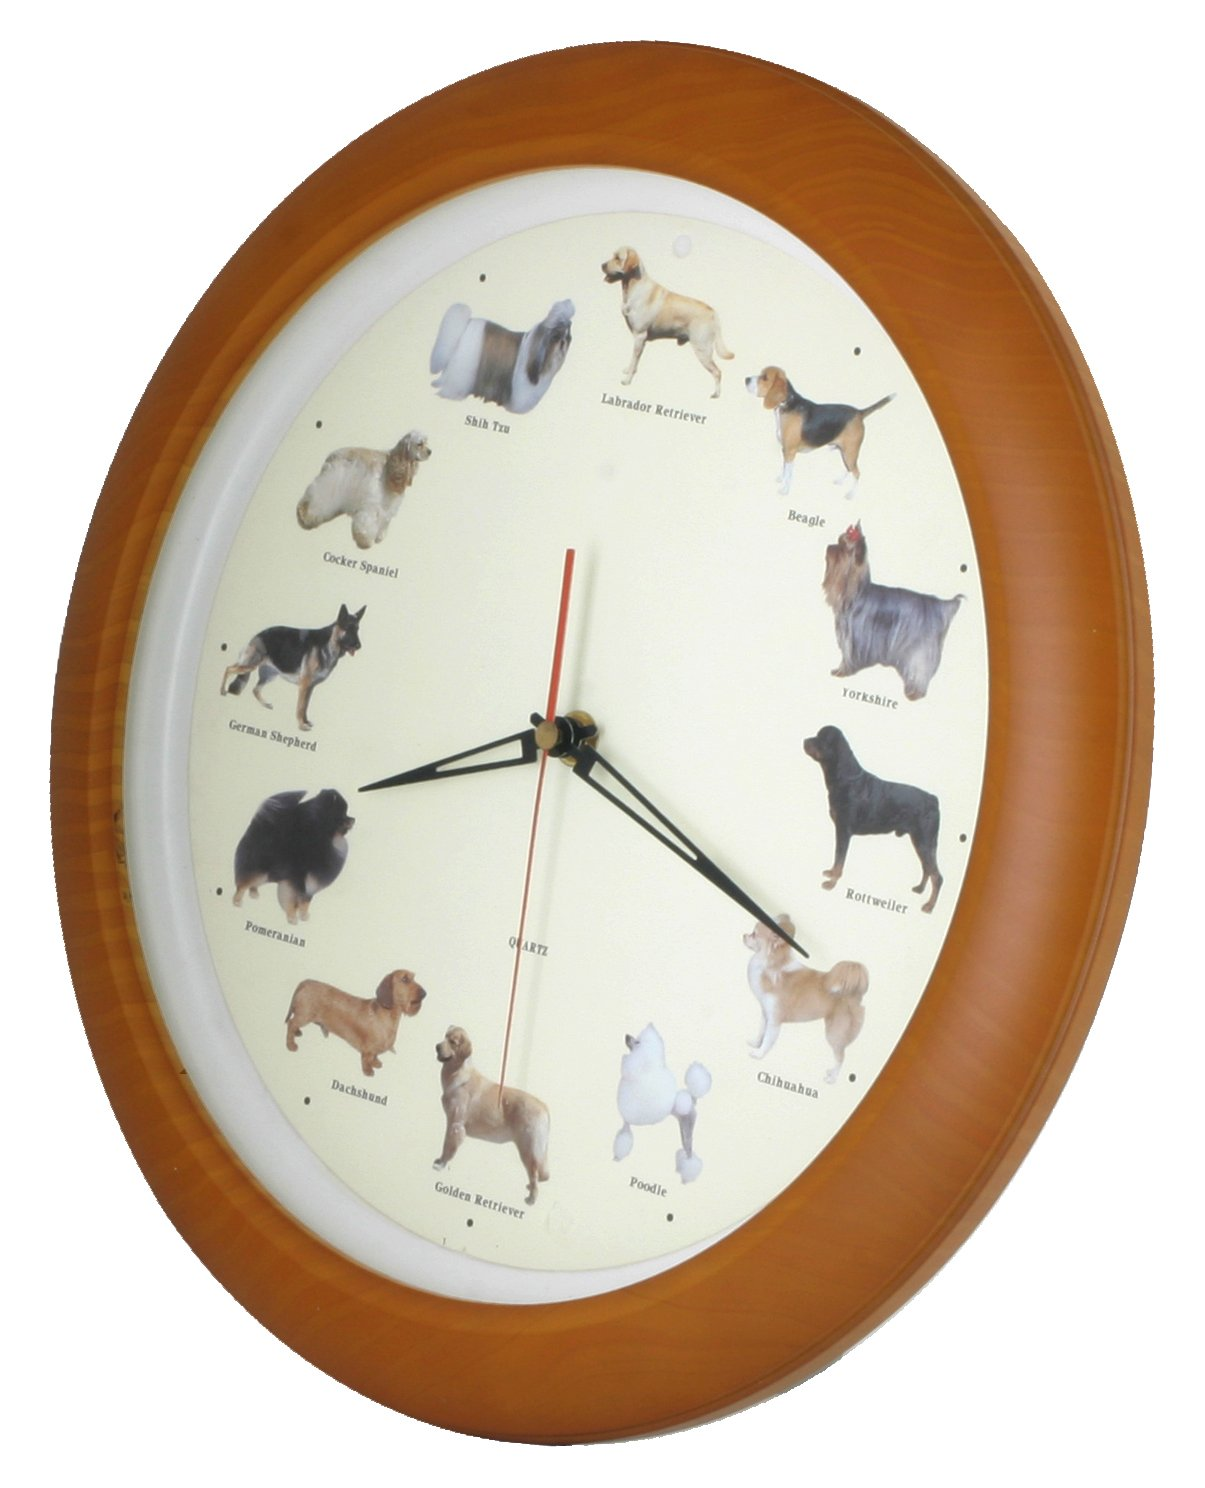 ISHIWA 14-inch Unique Animals Family Quality Wall Clock Silent Non-ticking Movement, Home Decor (W82057 Dogs) by ISHIWA (Image #2)